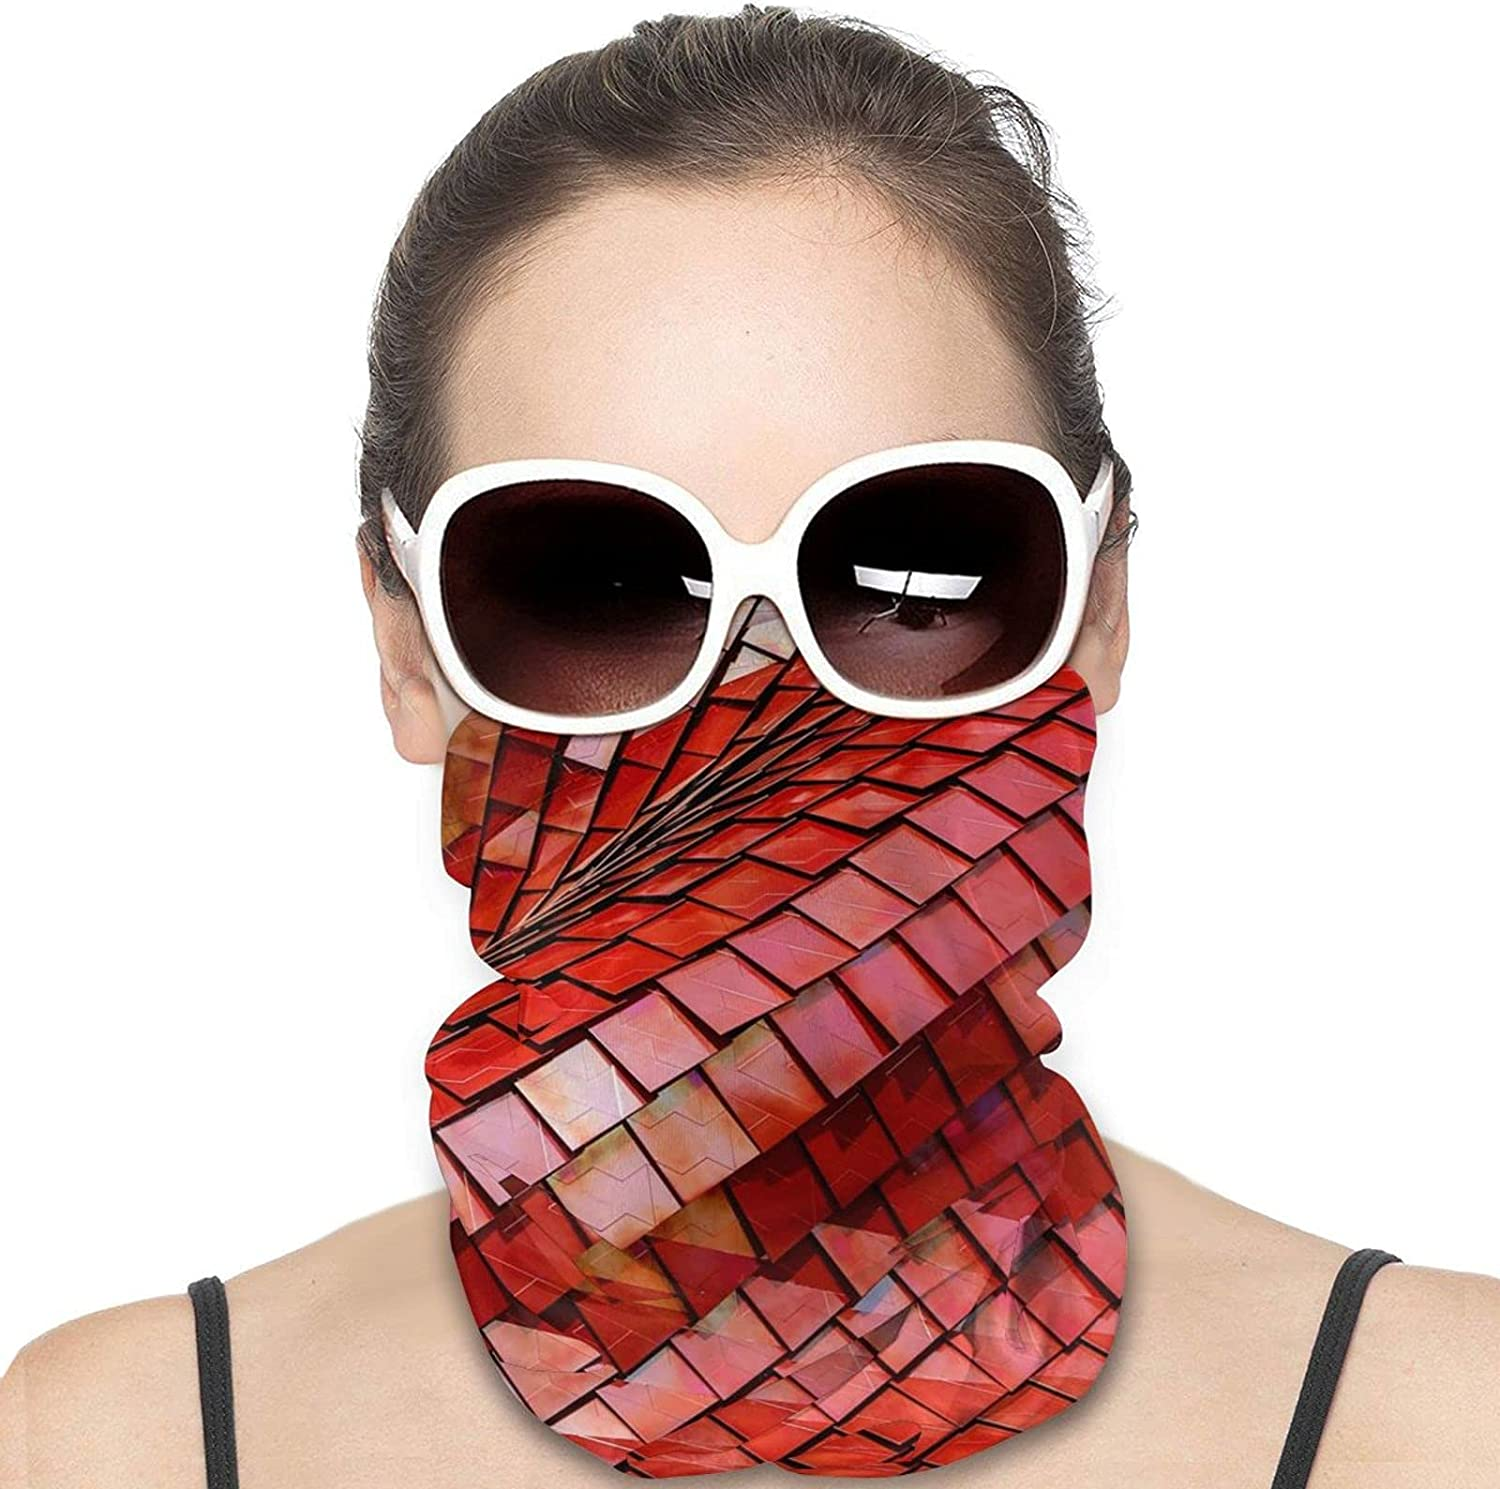 Abstract Unisex Neck Gaiter Face Mask Man'S Women Multifunction Balaclava Face Cover,Cycling Mask,Sport Neck Gaiter,Hiking Scarf,Fishing Mask, Motorcycle Face Cover